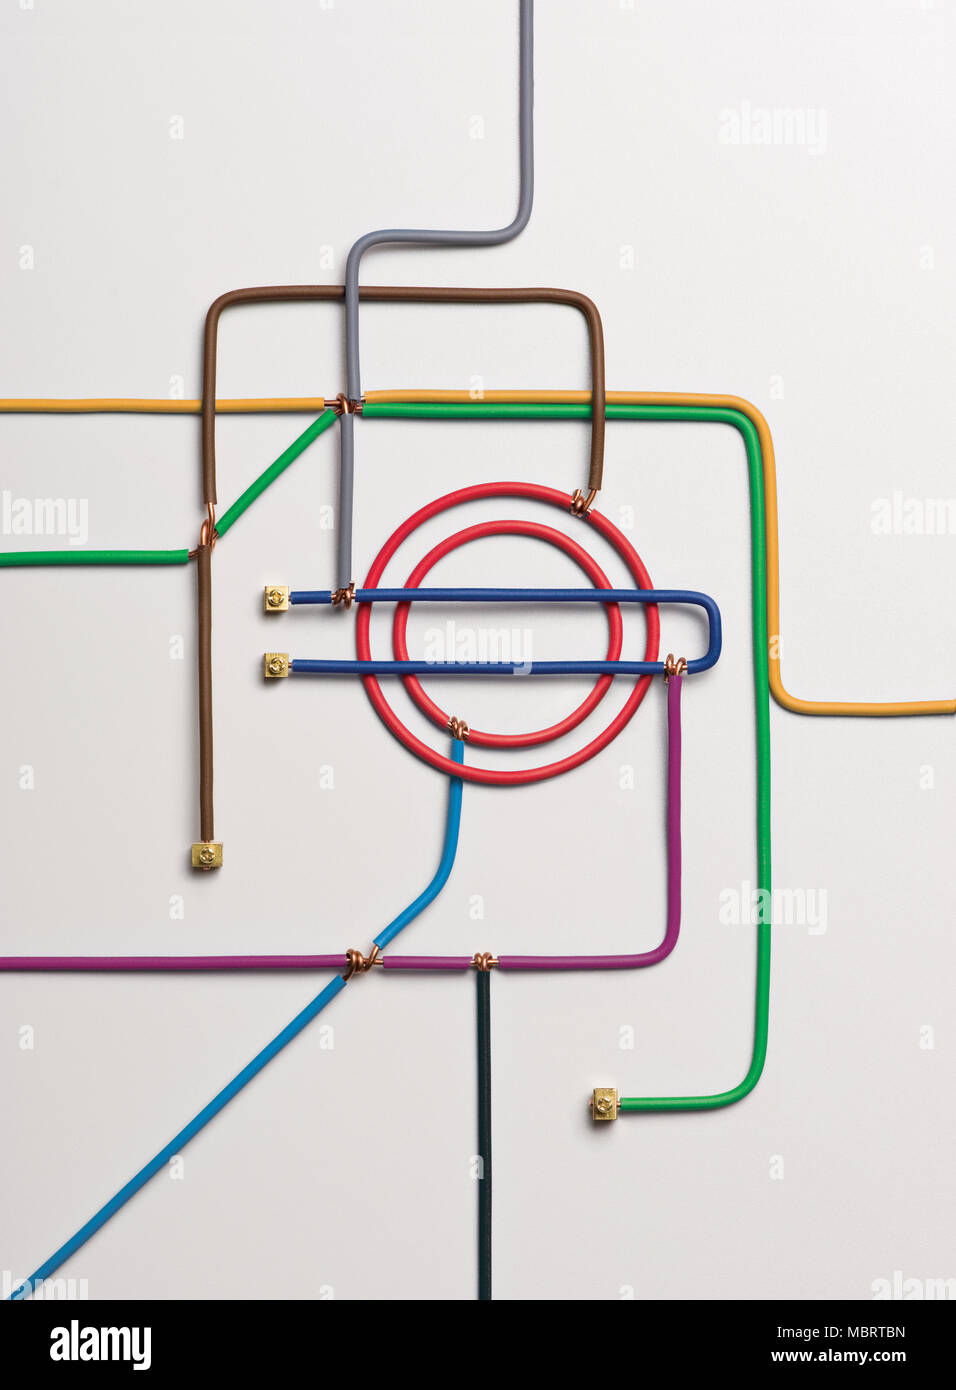 A map of the London underground made from modelling clay - Stock Image